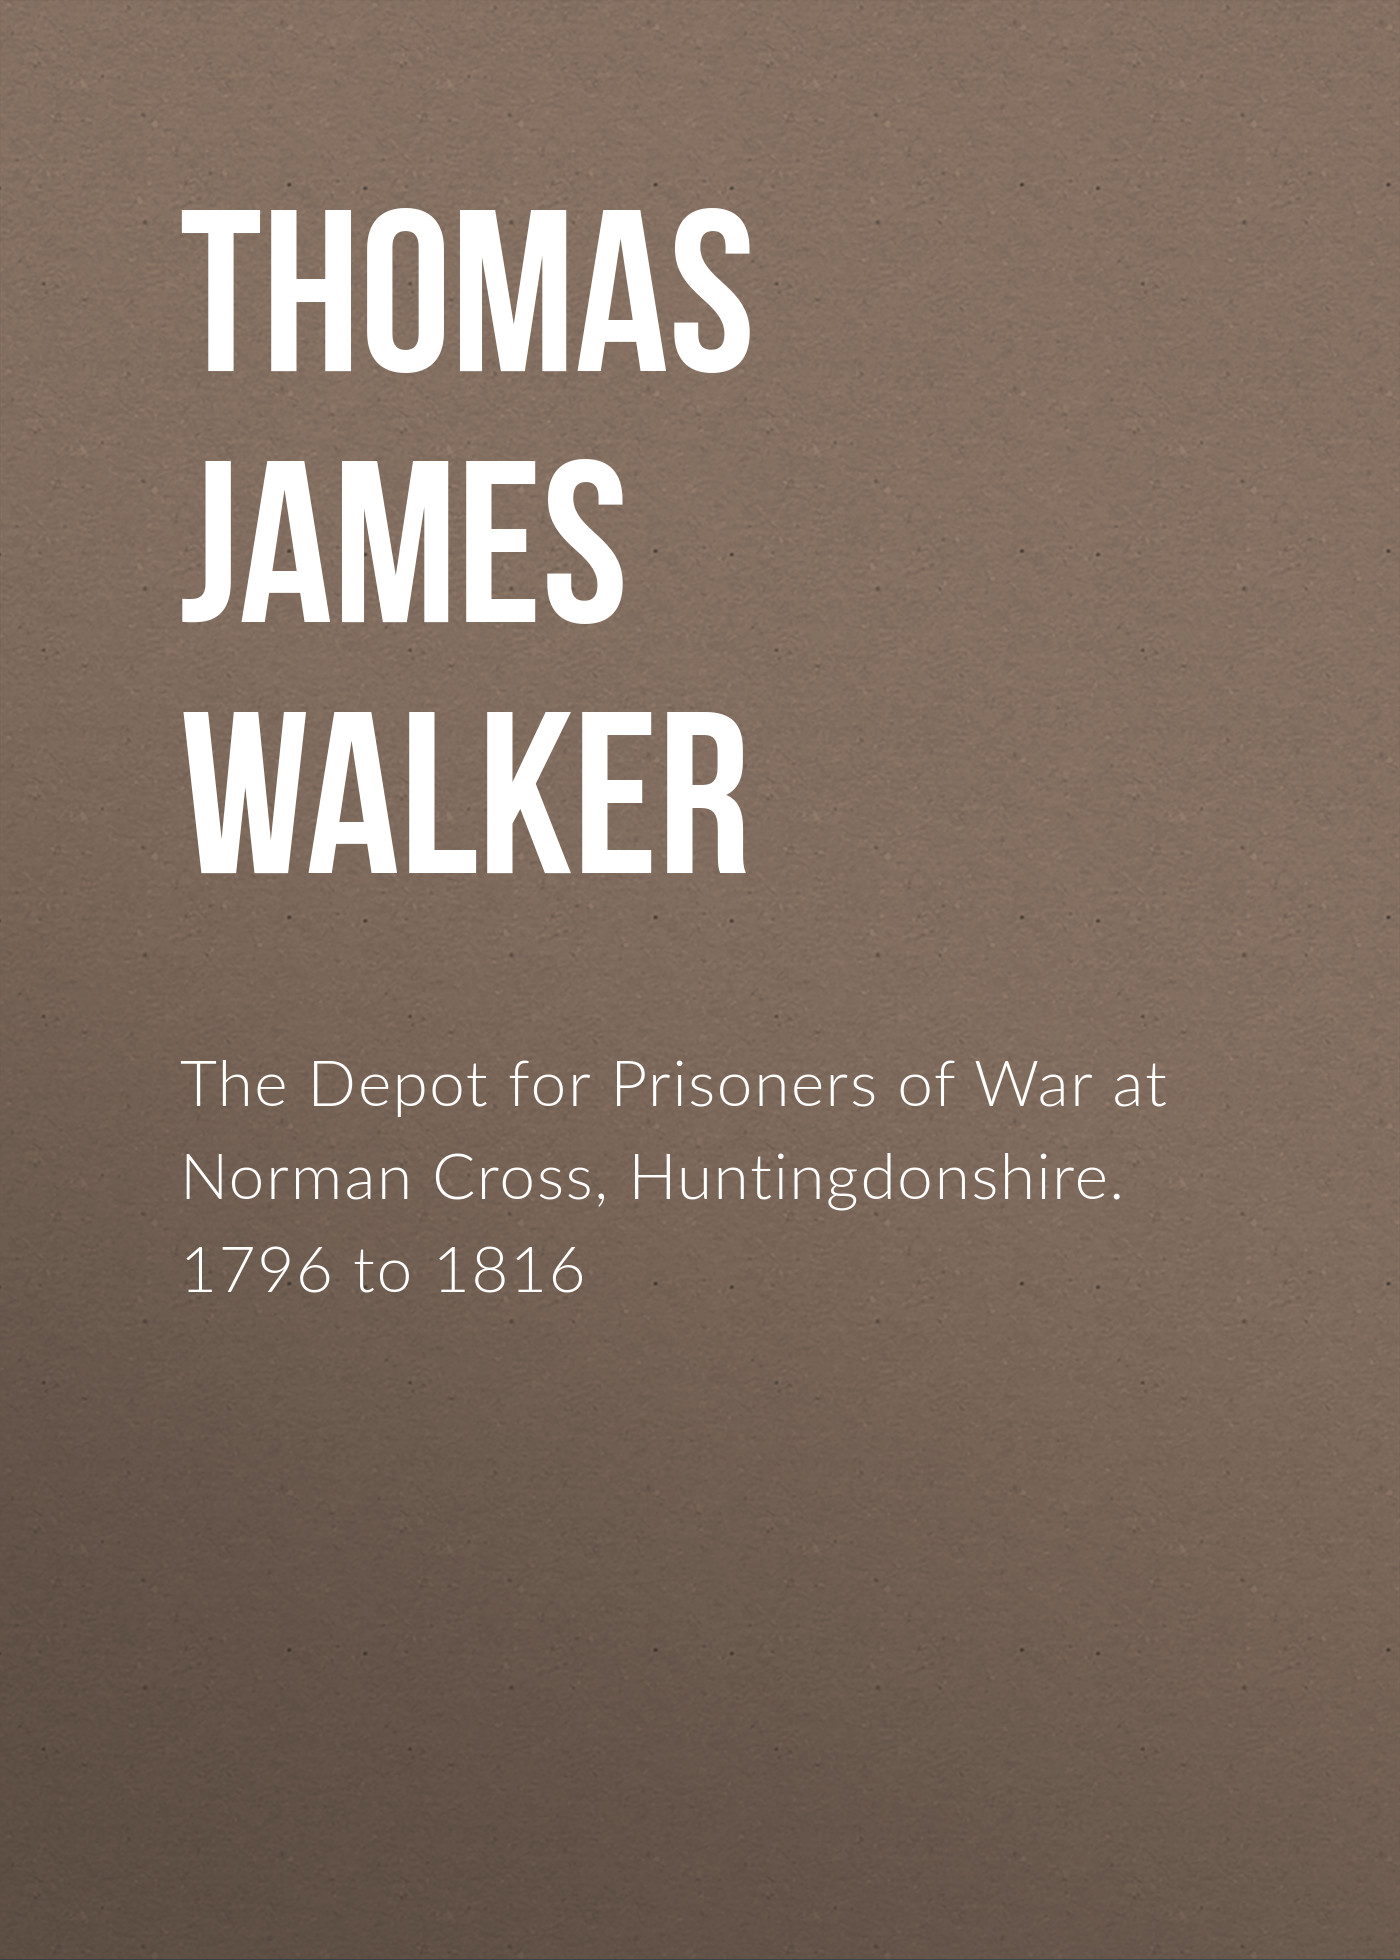 Thomas James Walker The Depot for Prisoners of War at Norman Cross, Huntingdonshire. 1796 to 1816 m weis t hickman the dragon at war